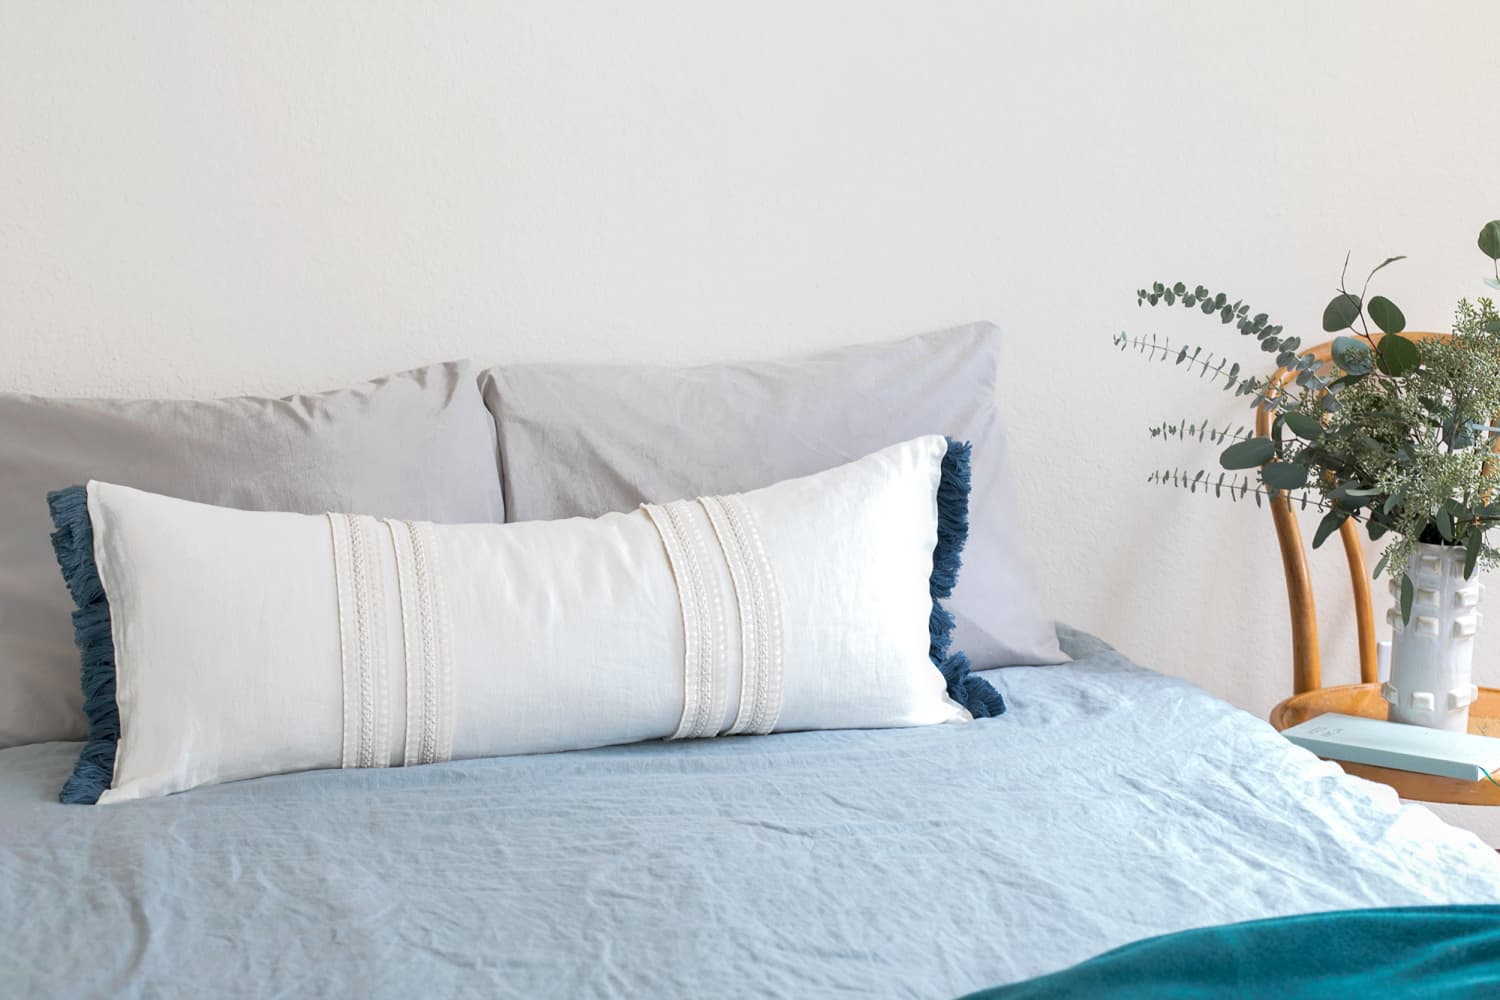 Make a Stylish Lumbar Pillow in 3 Easy Steps (No Sewing Required)